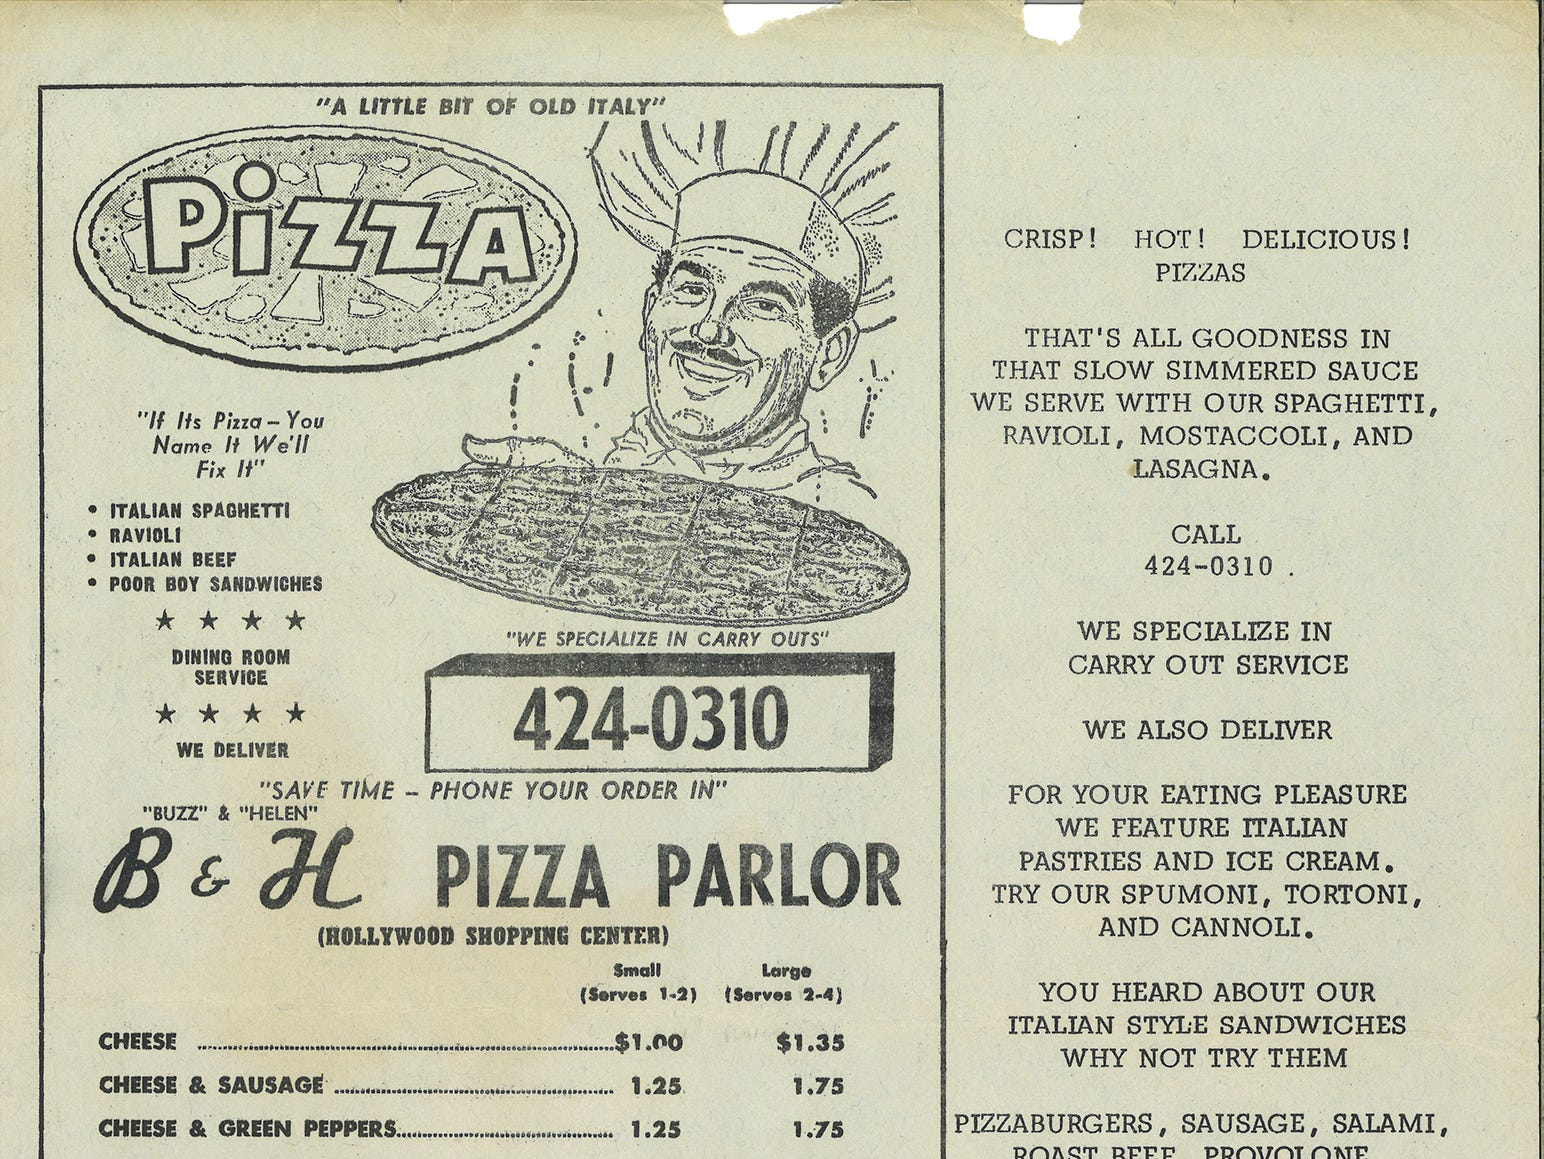 Helen Baudo first opened B&H Pizza Parlor in Jackson, Tenn. in 1965. The restaurant offered the first pizza in Jackson and was the city's first Italian eatery.